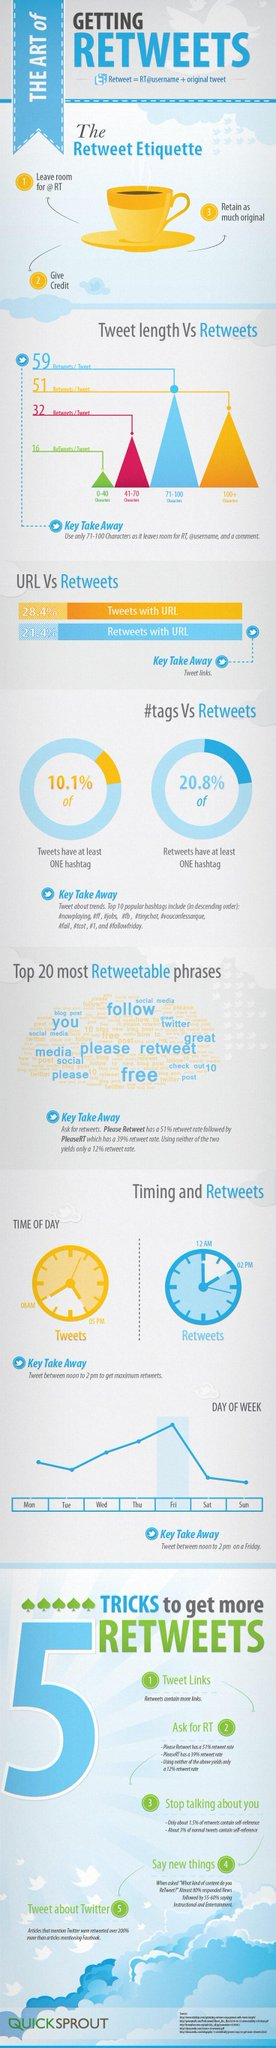 RT @Timothy_Hughes: How to Get More Retweets on Twitter [INFOGRAPHIC] #smlondon http://t.co/IoyT1ueHPY #Socialselling @tweetrstokes http://…